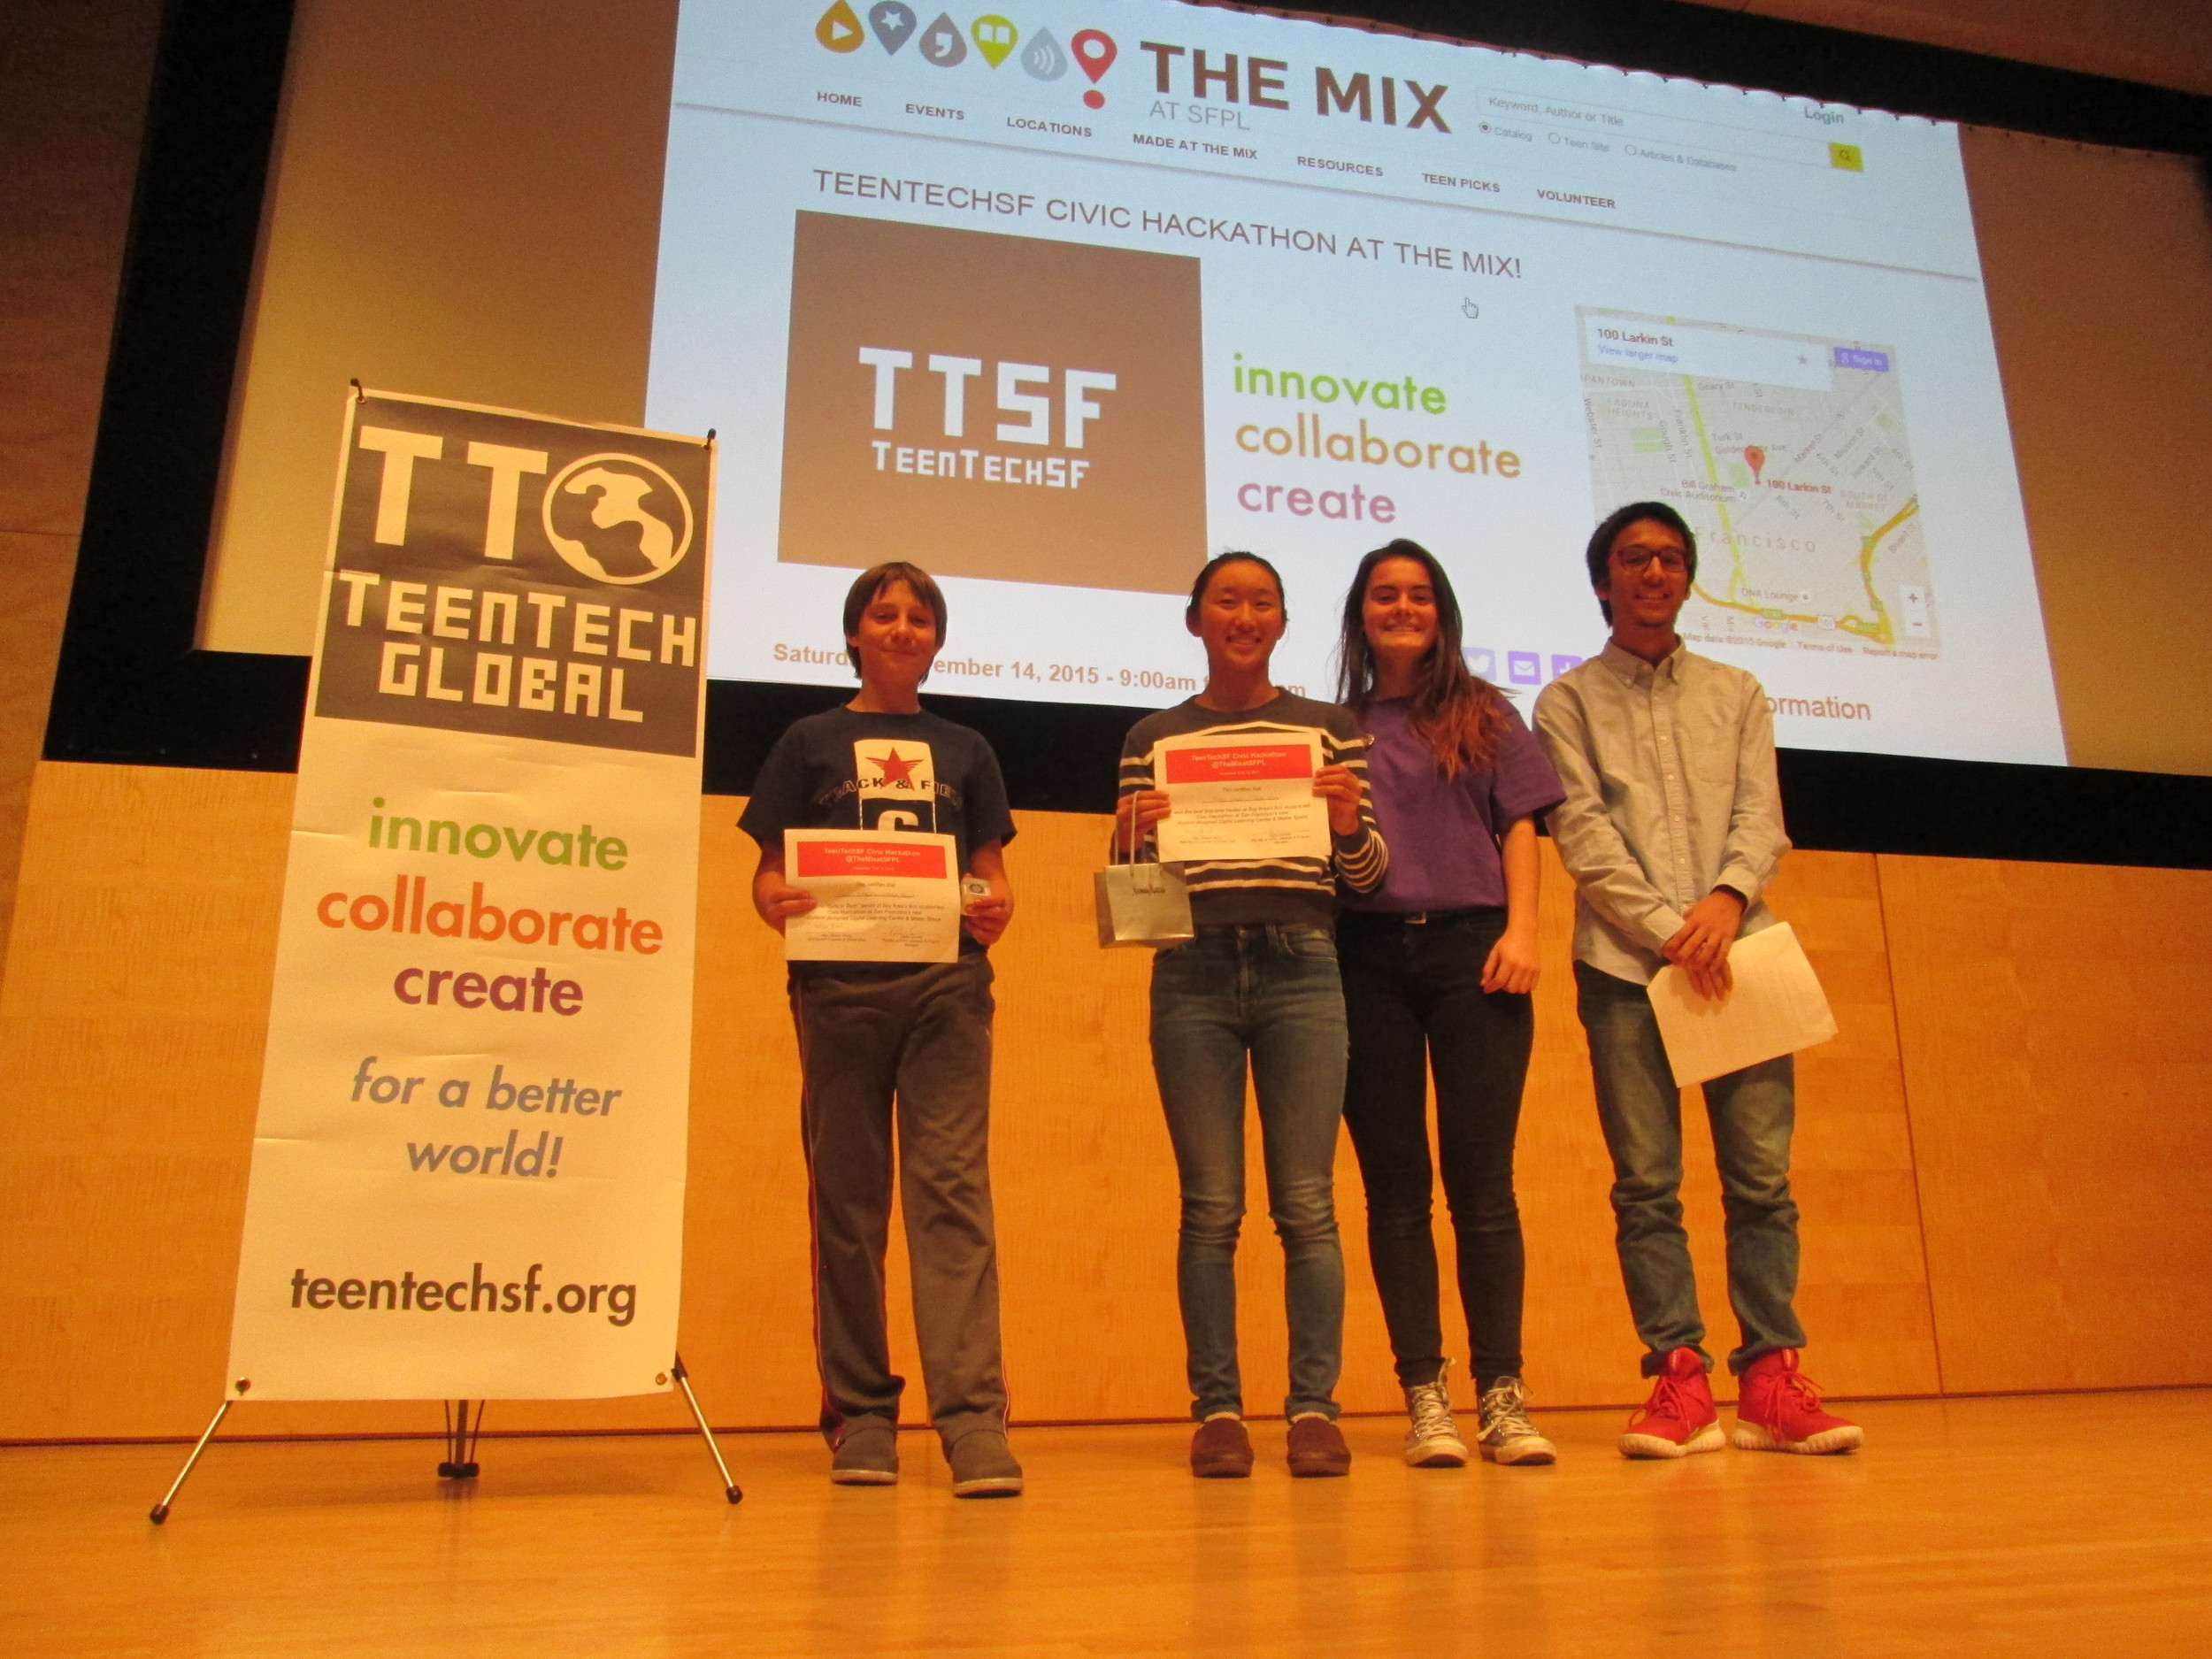 Best 1st time hacker: Drew Pilkinton, Best female hacker Ivy Chen, TTSF Pres-Elect Camille Colbert, TTSF Founder & Global Chair, Marc Robert Wong